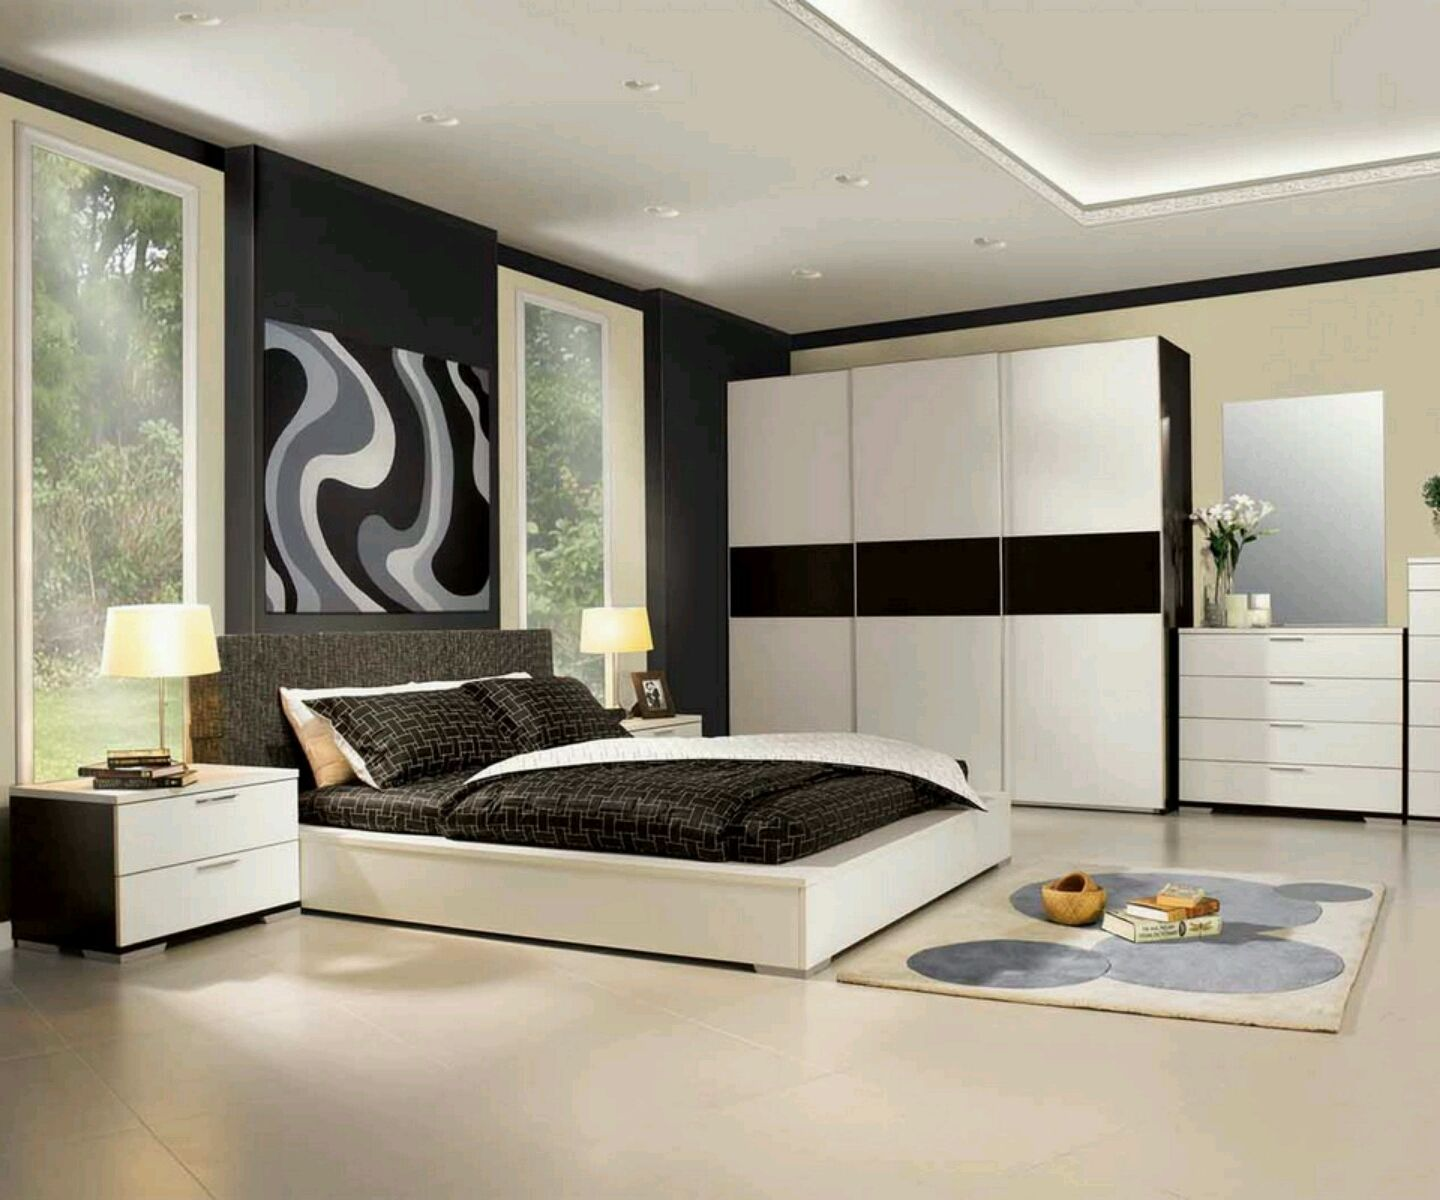 Contemporary Furniture Bedroom: Modern Bedroom Furniture Design For More Pictures And